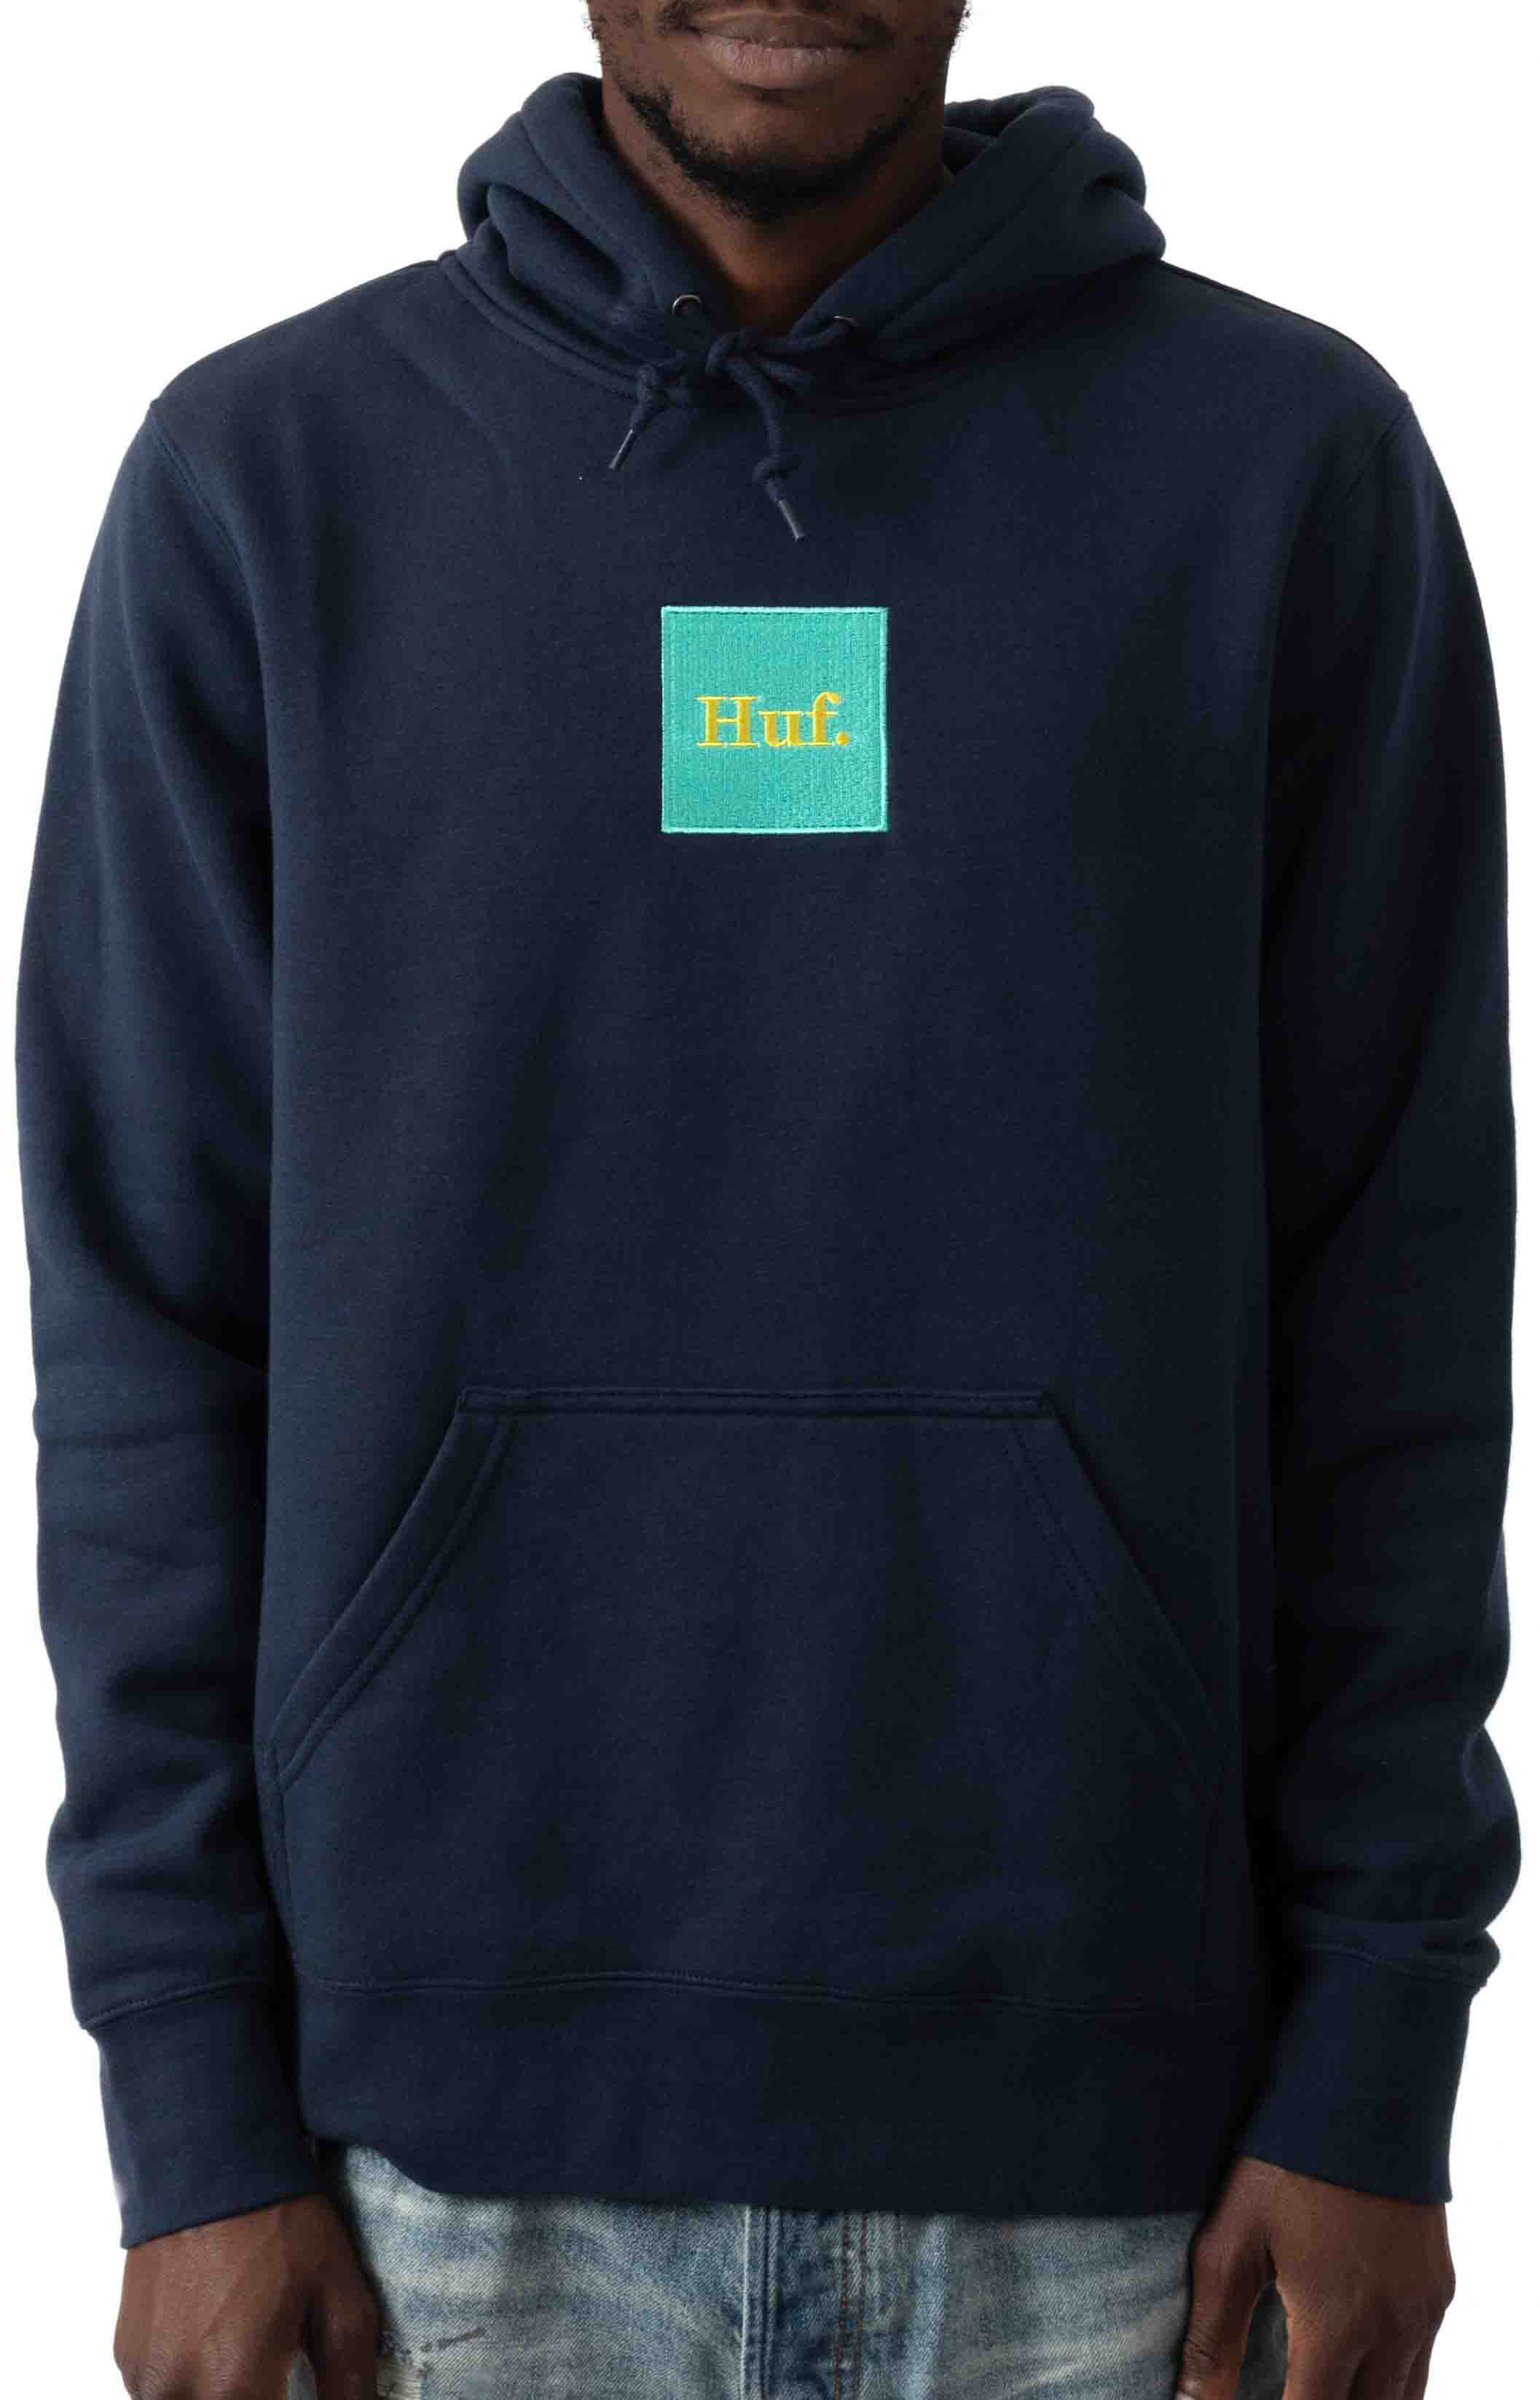 Domestic Box Embroidery Pullover Hoodie - Navy Blazer